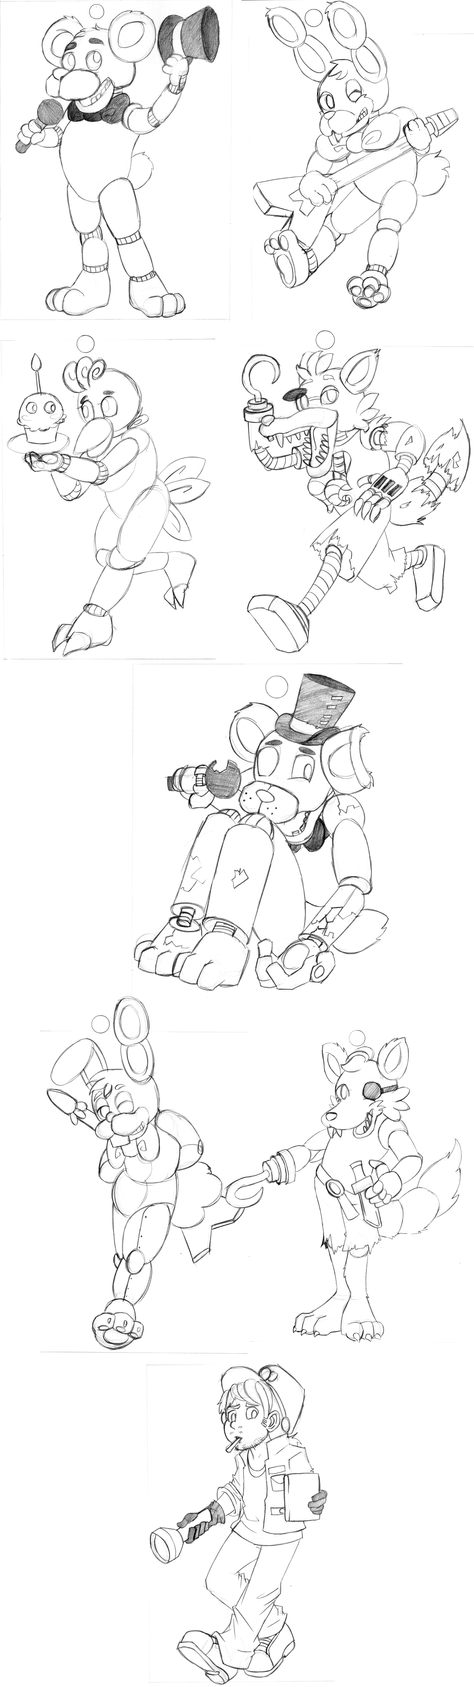 Sketchup 10-24-2014 Freddy and Friends by DeviousVampire